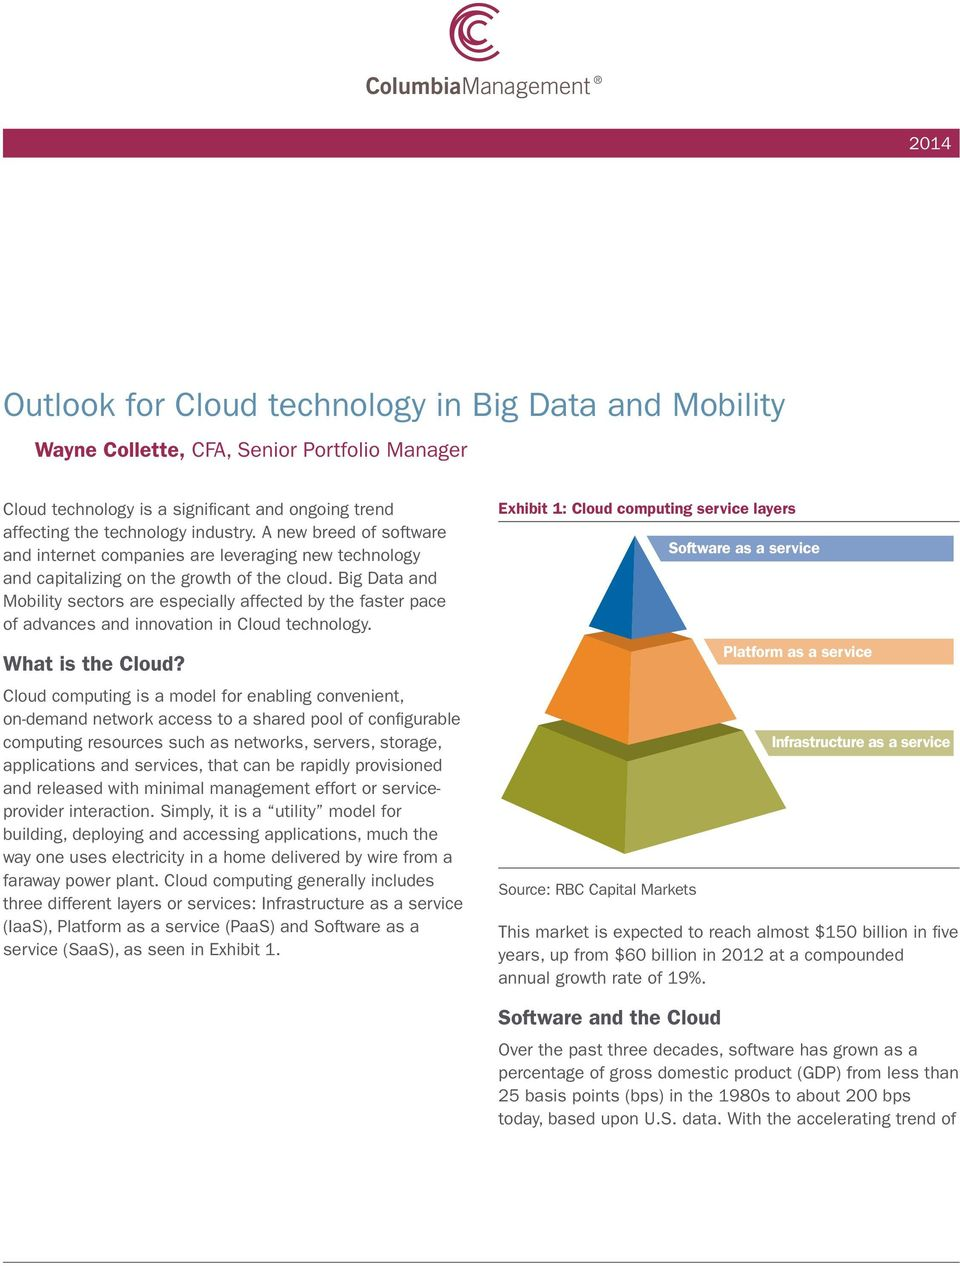 Big Data and Mobility sectors are especially affected by the faster pace of advances and innovation in Cloud technology. What is the Cloud?